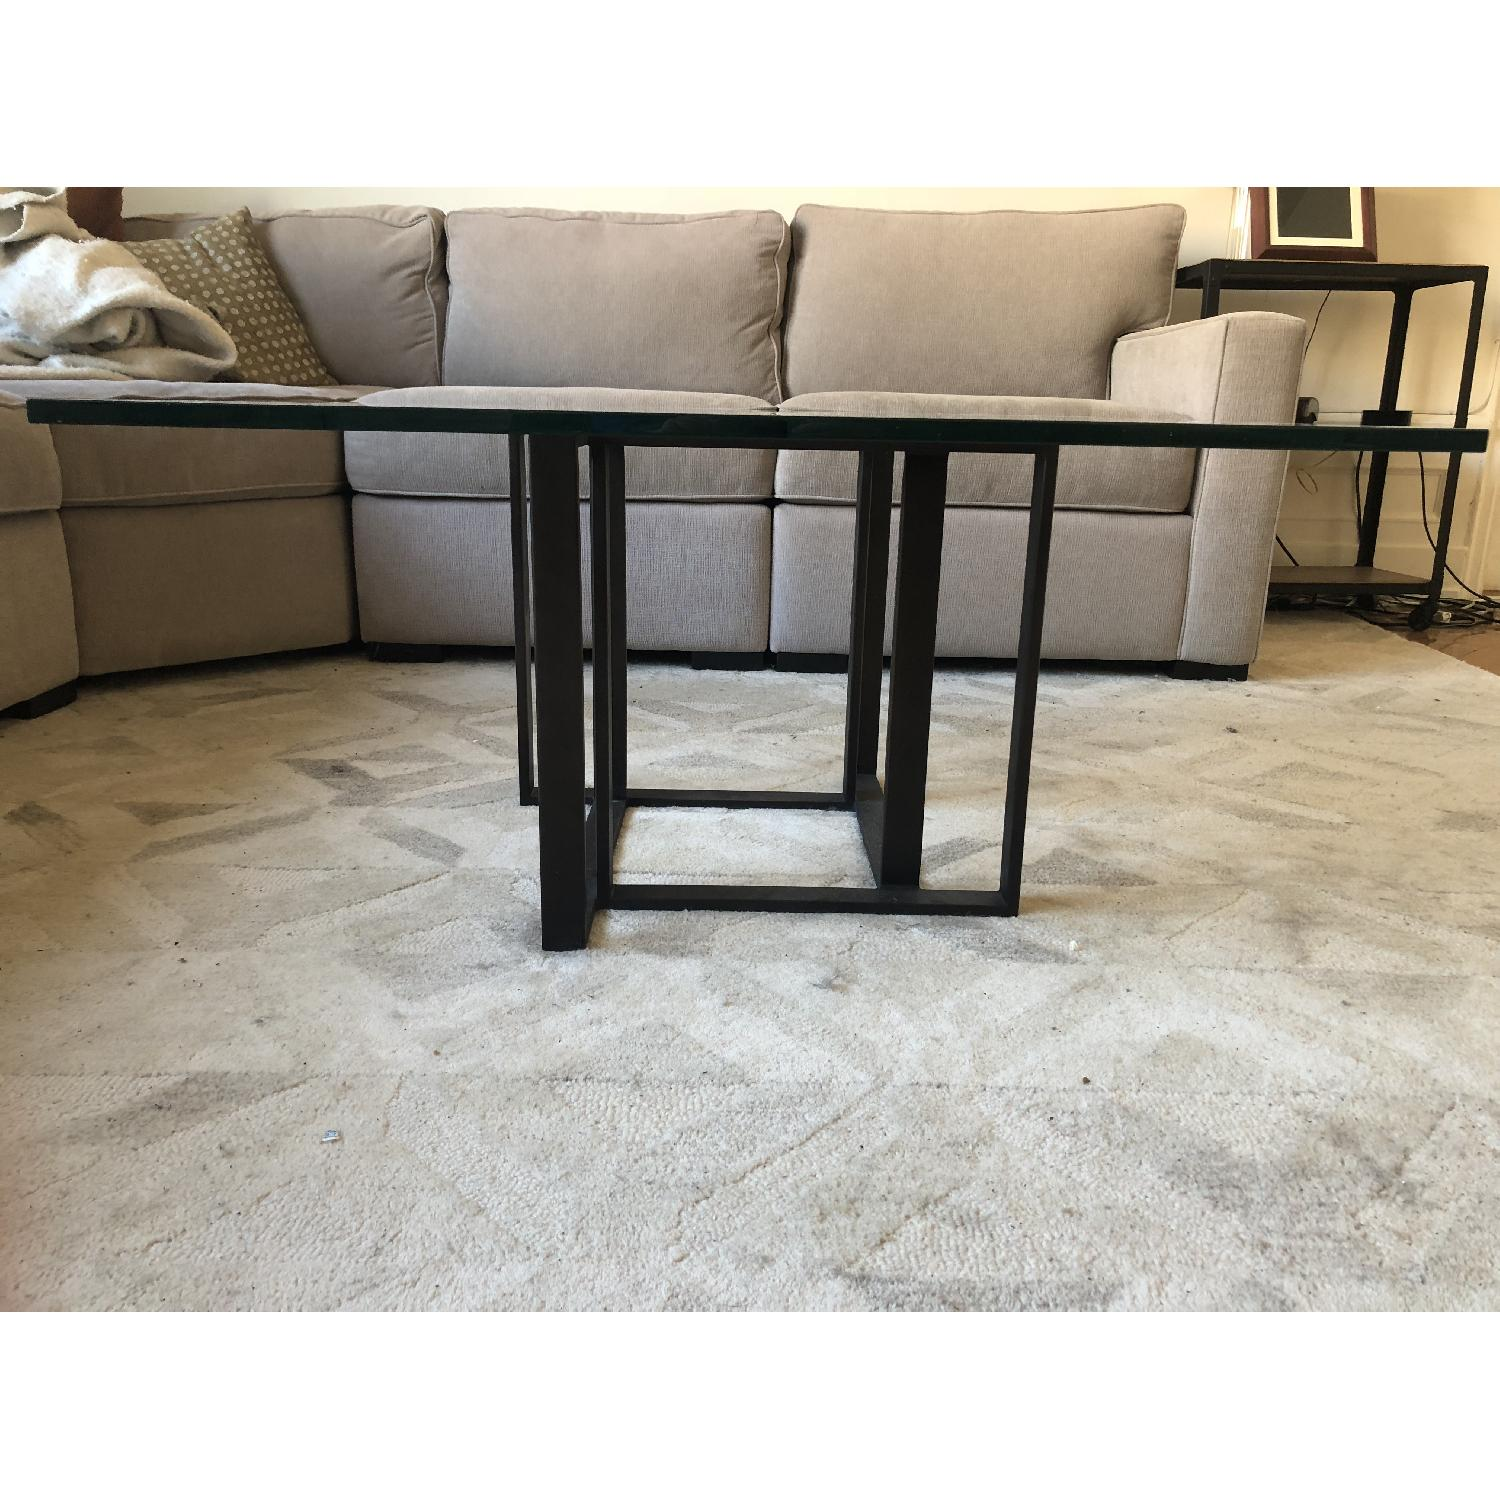 Crate & Barrel Glass Coffee Table-1